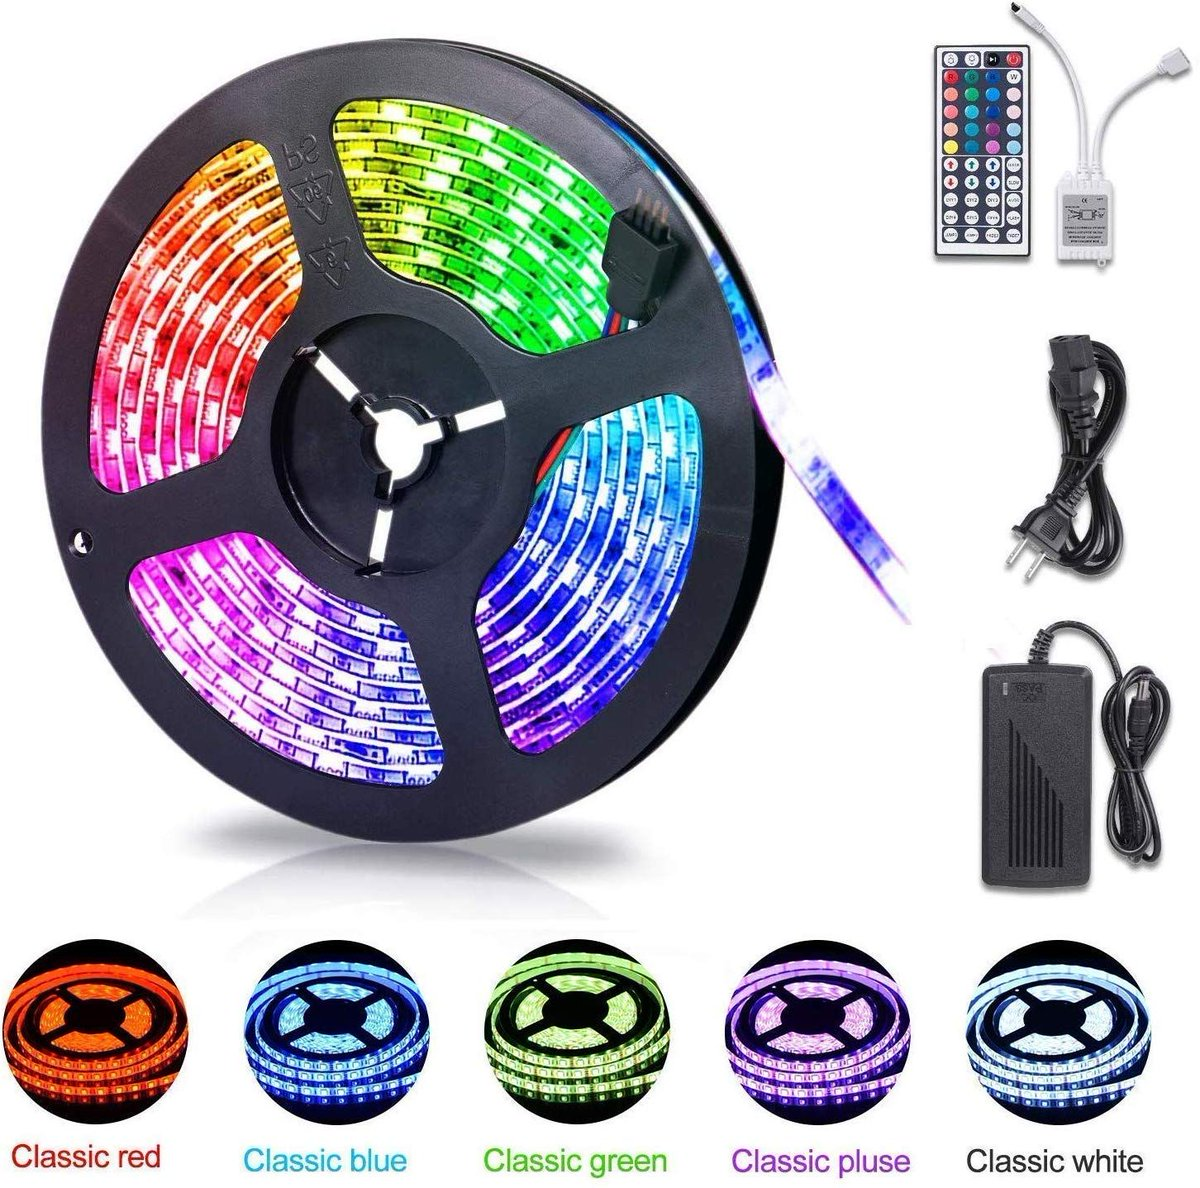 16.4ft Waterproof Color Changing RGB LED Light Strip   $12.59 with FREE PRIME SHIPPING  Clip the 10% off coupon on page + use code 30T1ZHX8 at checkout https://amzn.to/2SNJsOz   #steals #stealsanddealspic.twitter.com/odTyzqei5n